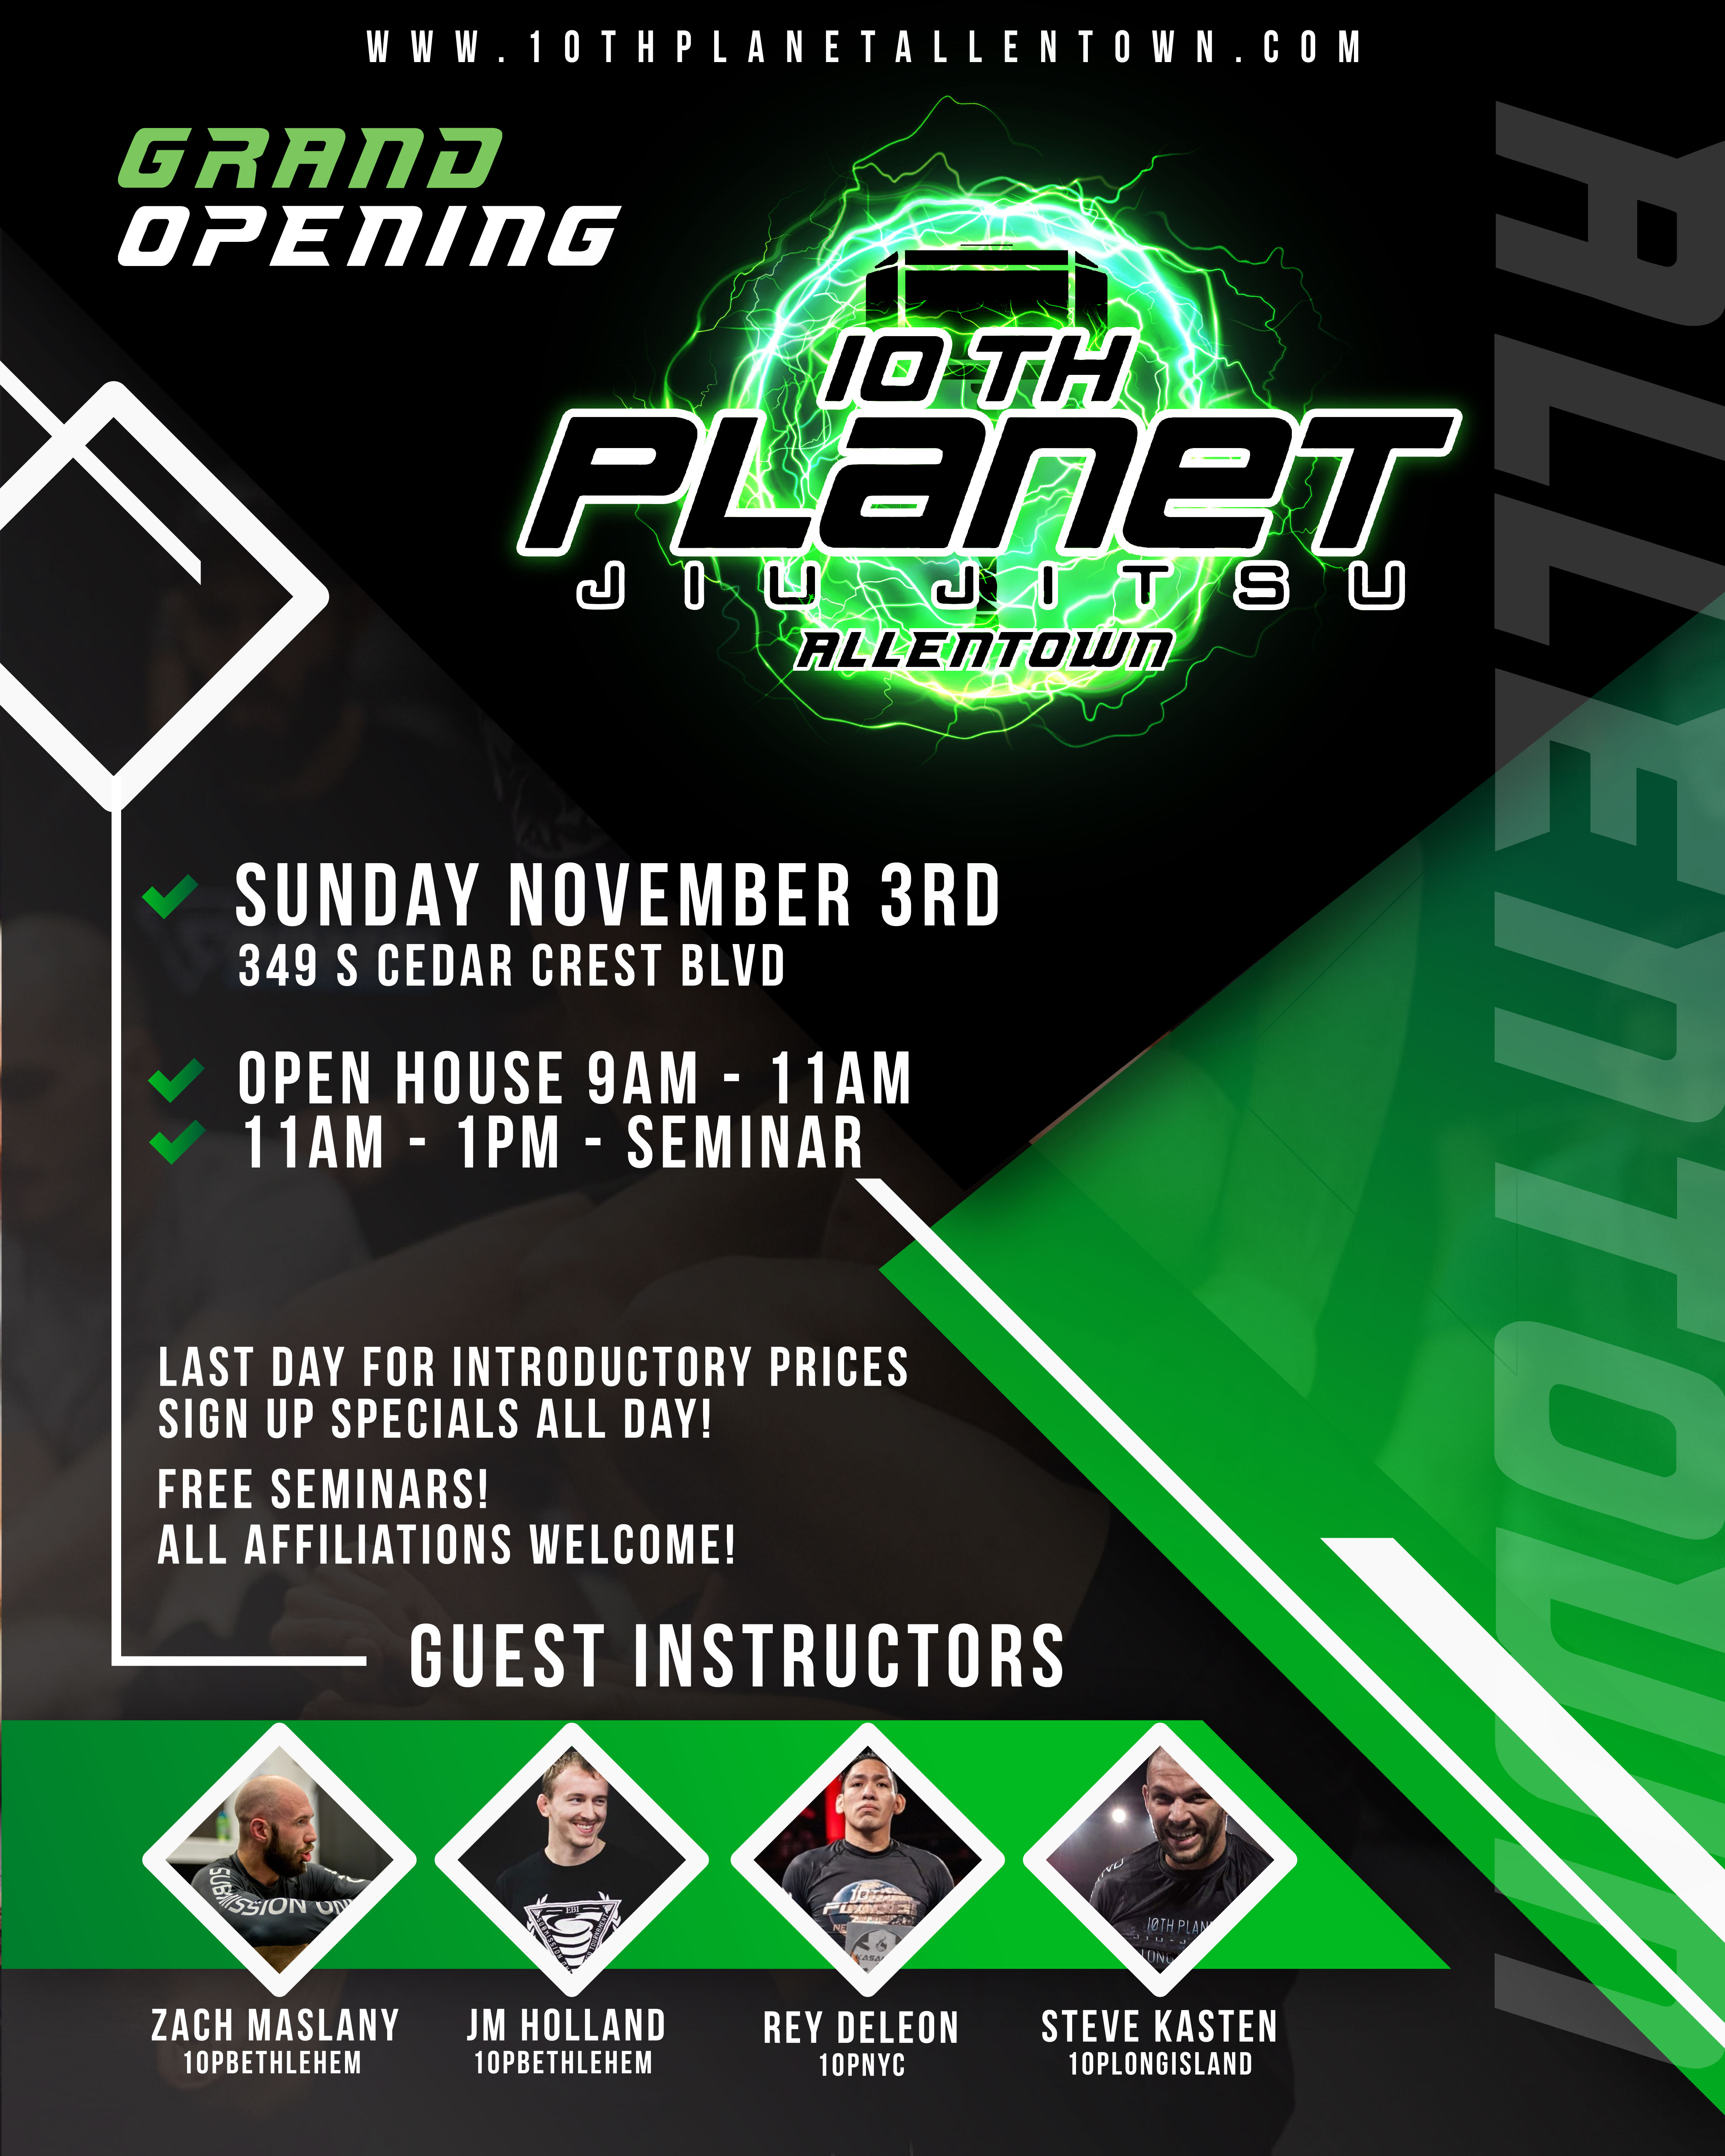 10th Planet Allentown Grand Opening Flyer